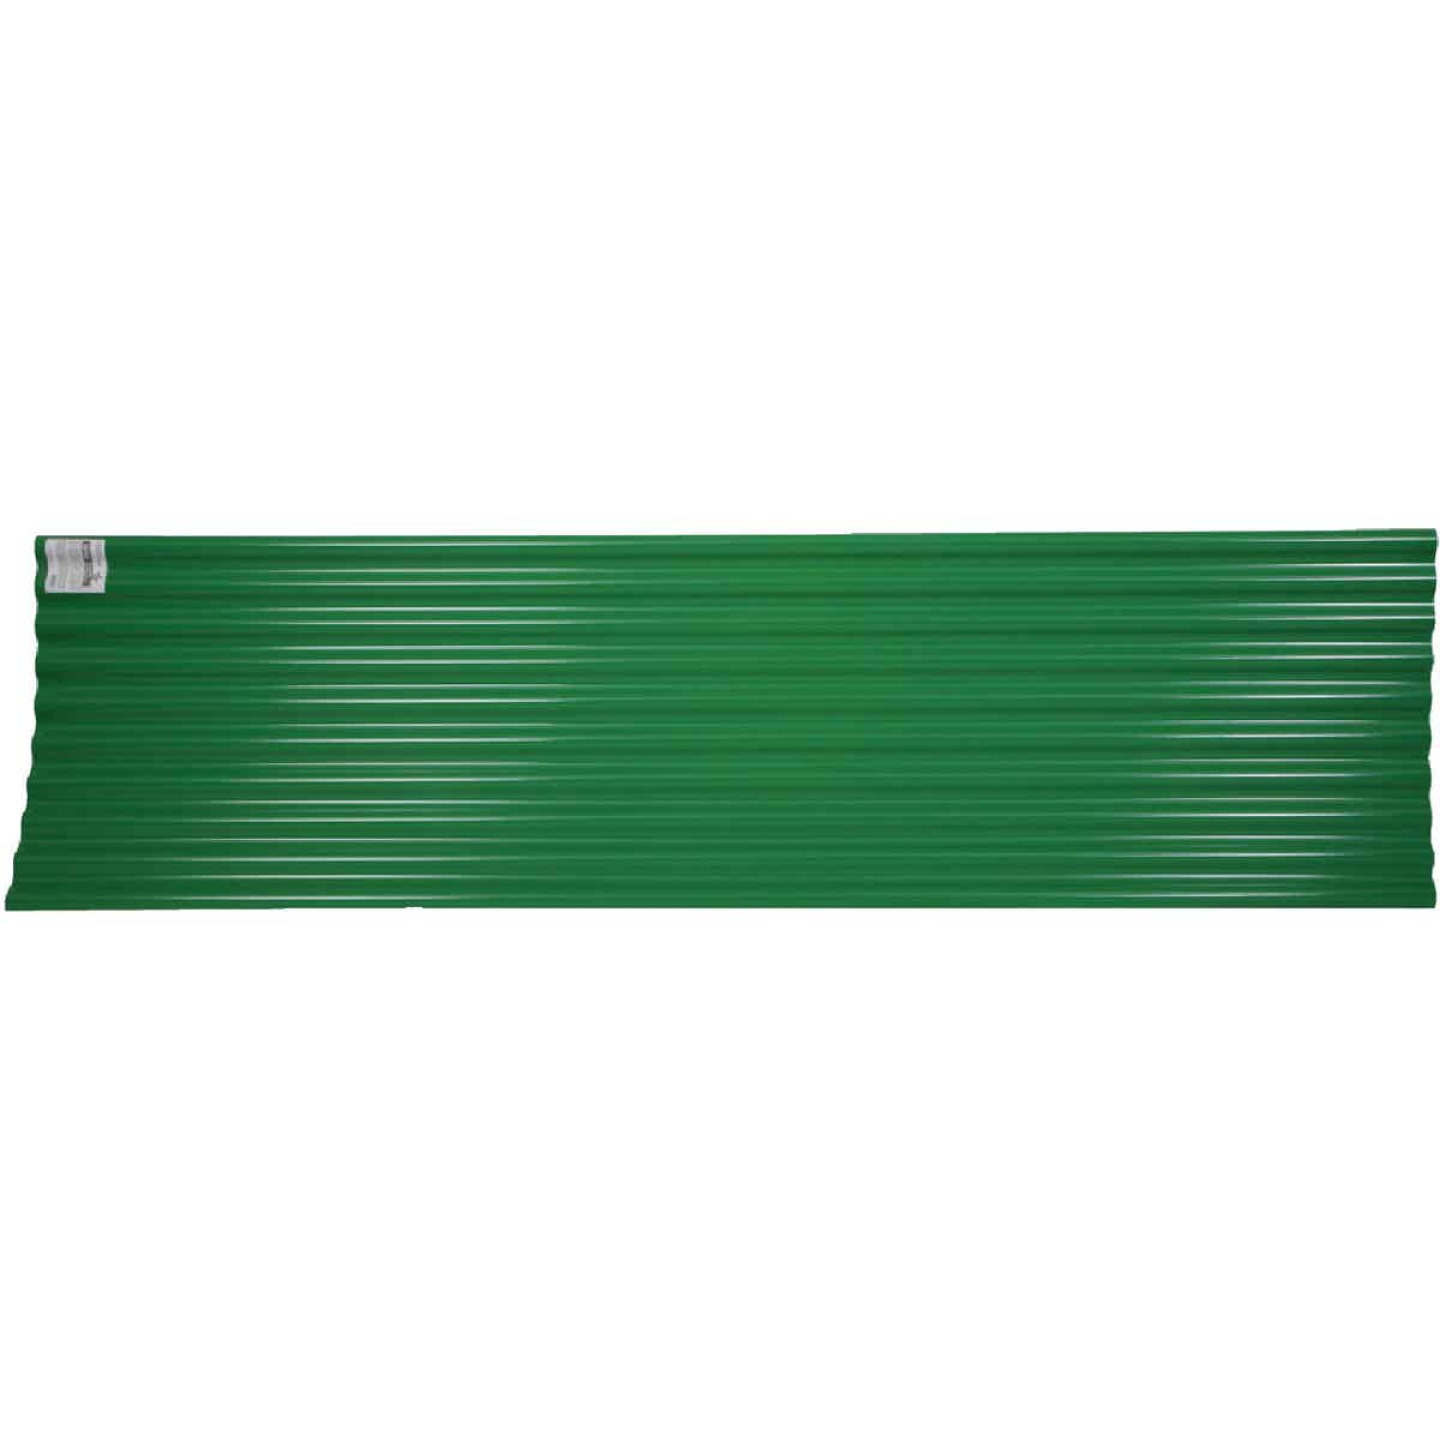 Tuftex Seacoaster 26 In. x 12 Ft. Opaque Green Round Wave  Vinyl Corrugated Panels Image 1